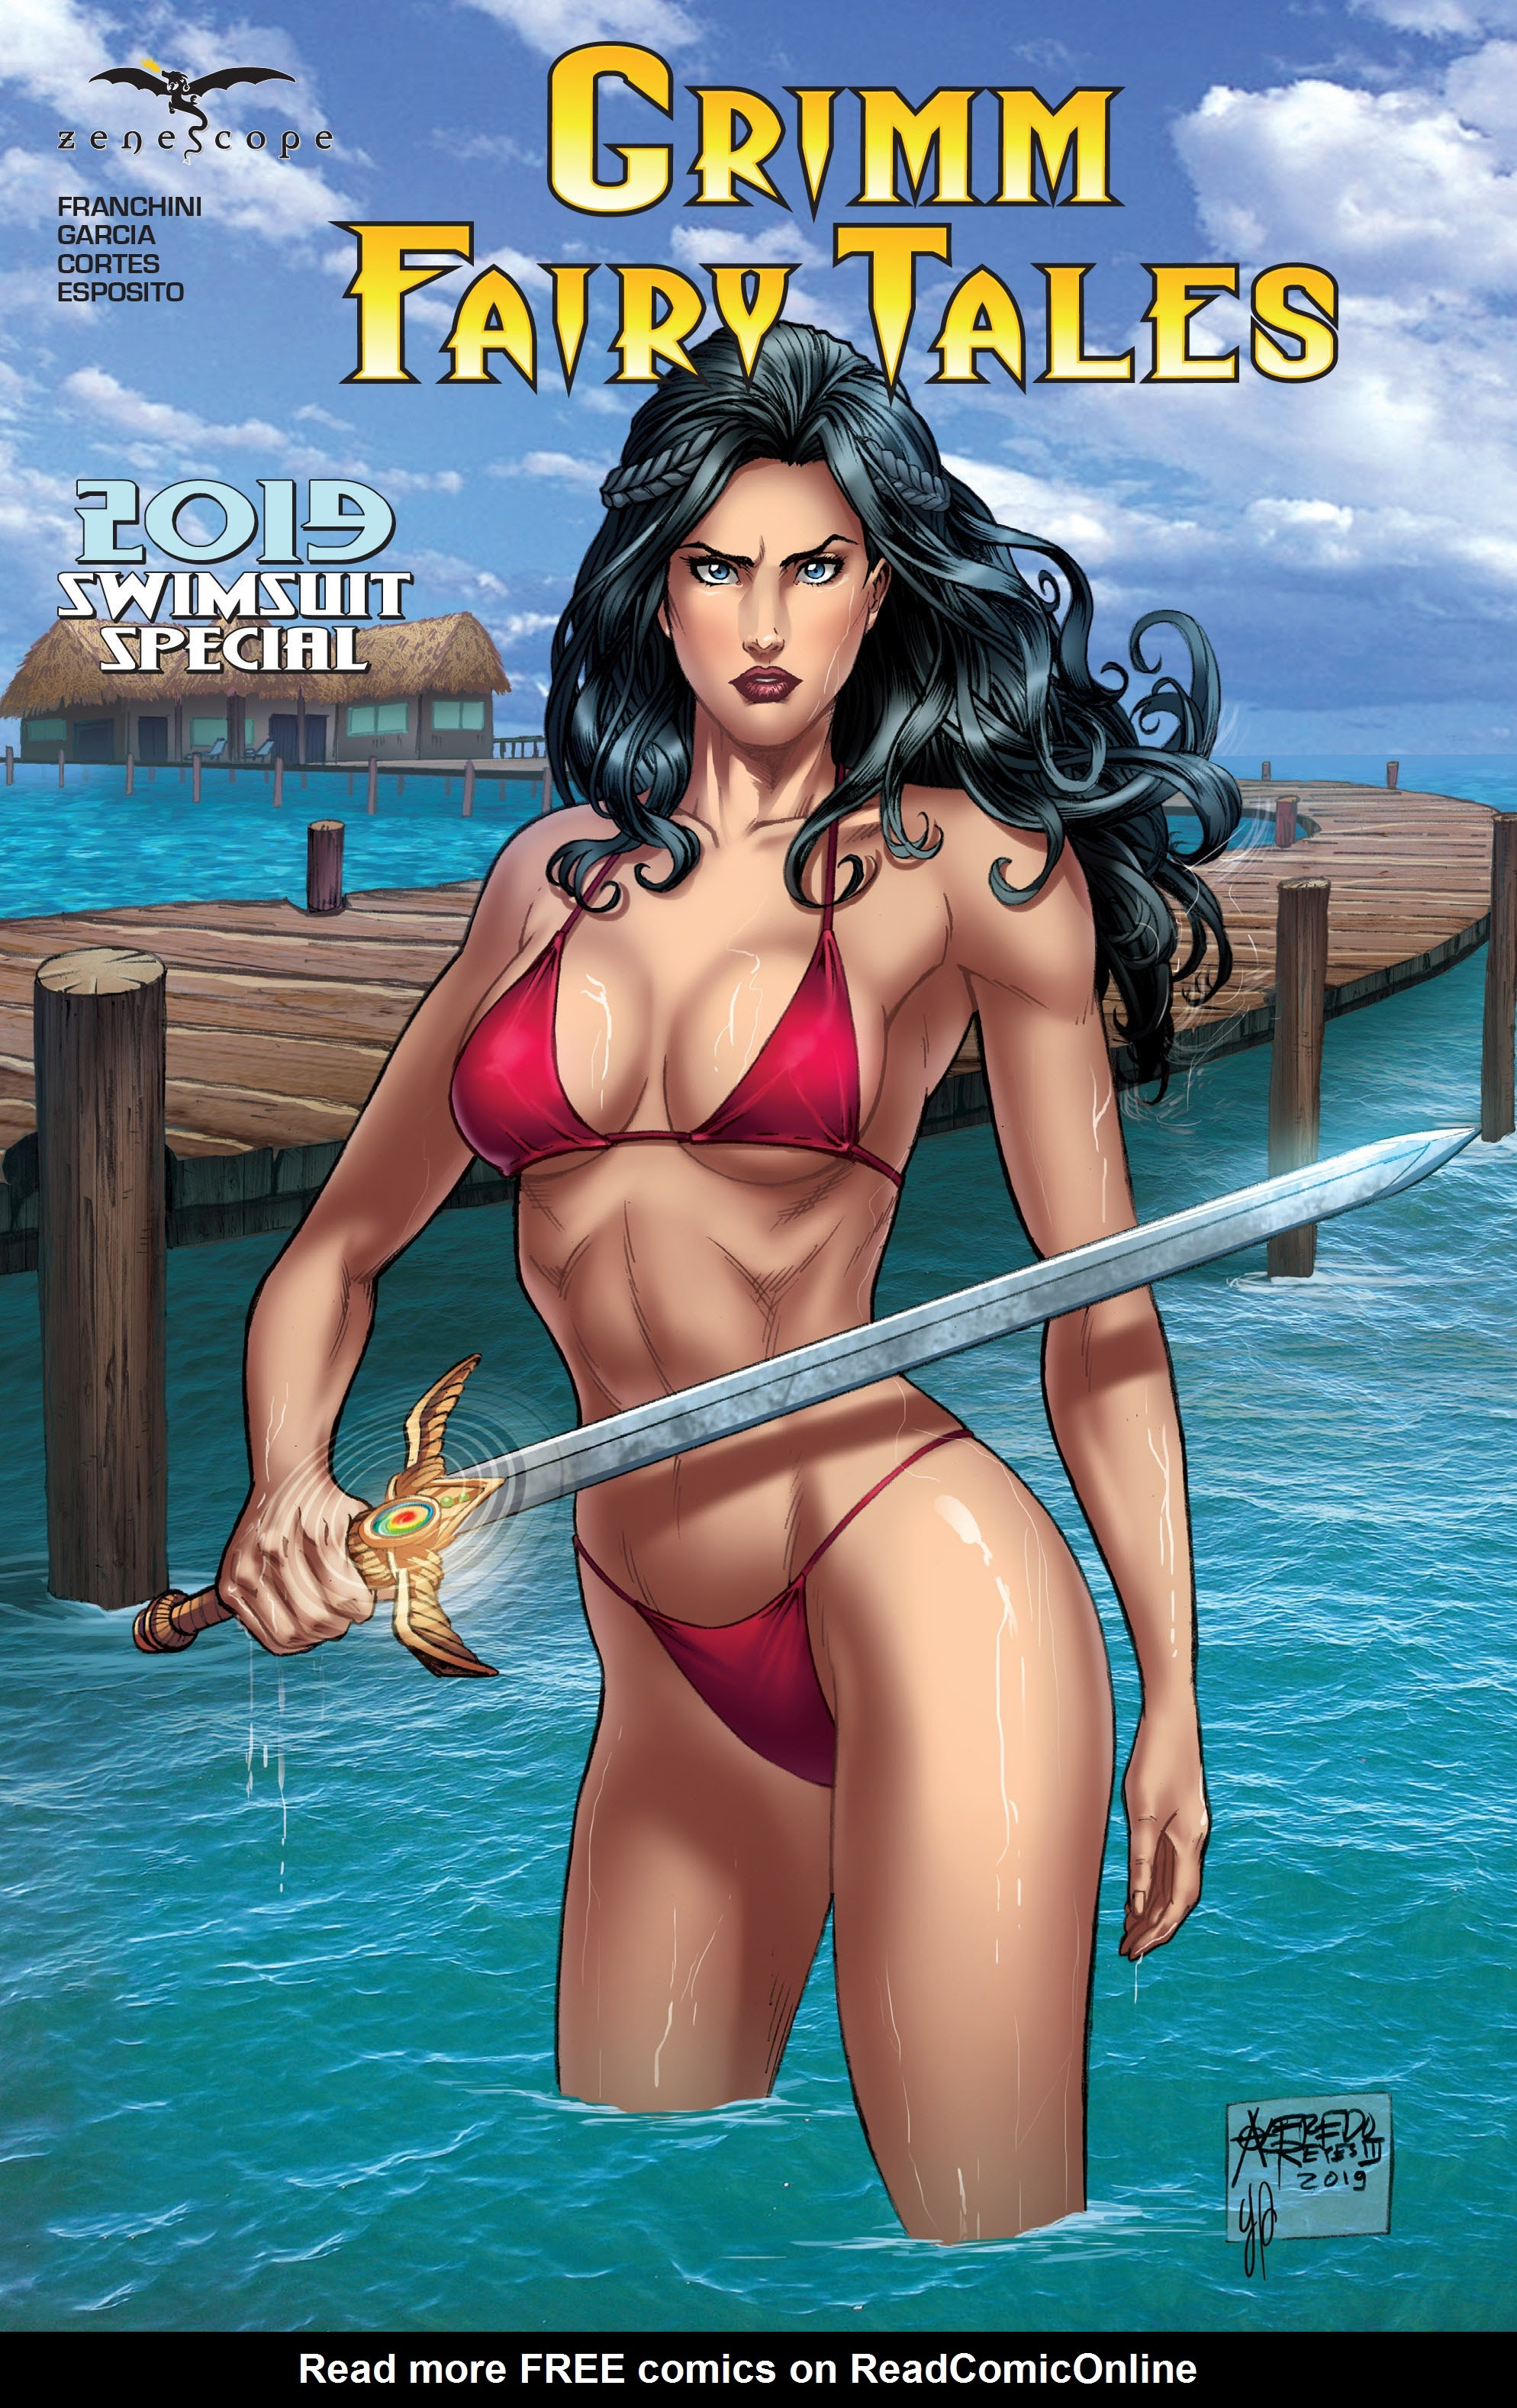 Grimm Fairy Tales 2019 Swimsuit Special Full Page 1